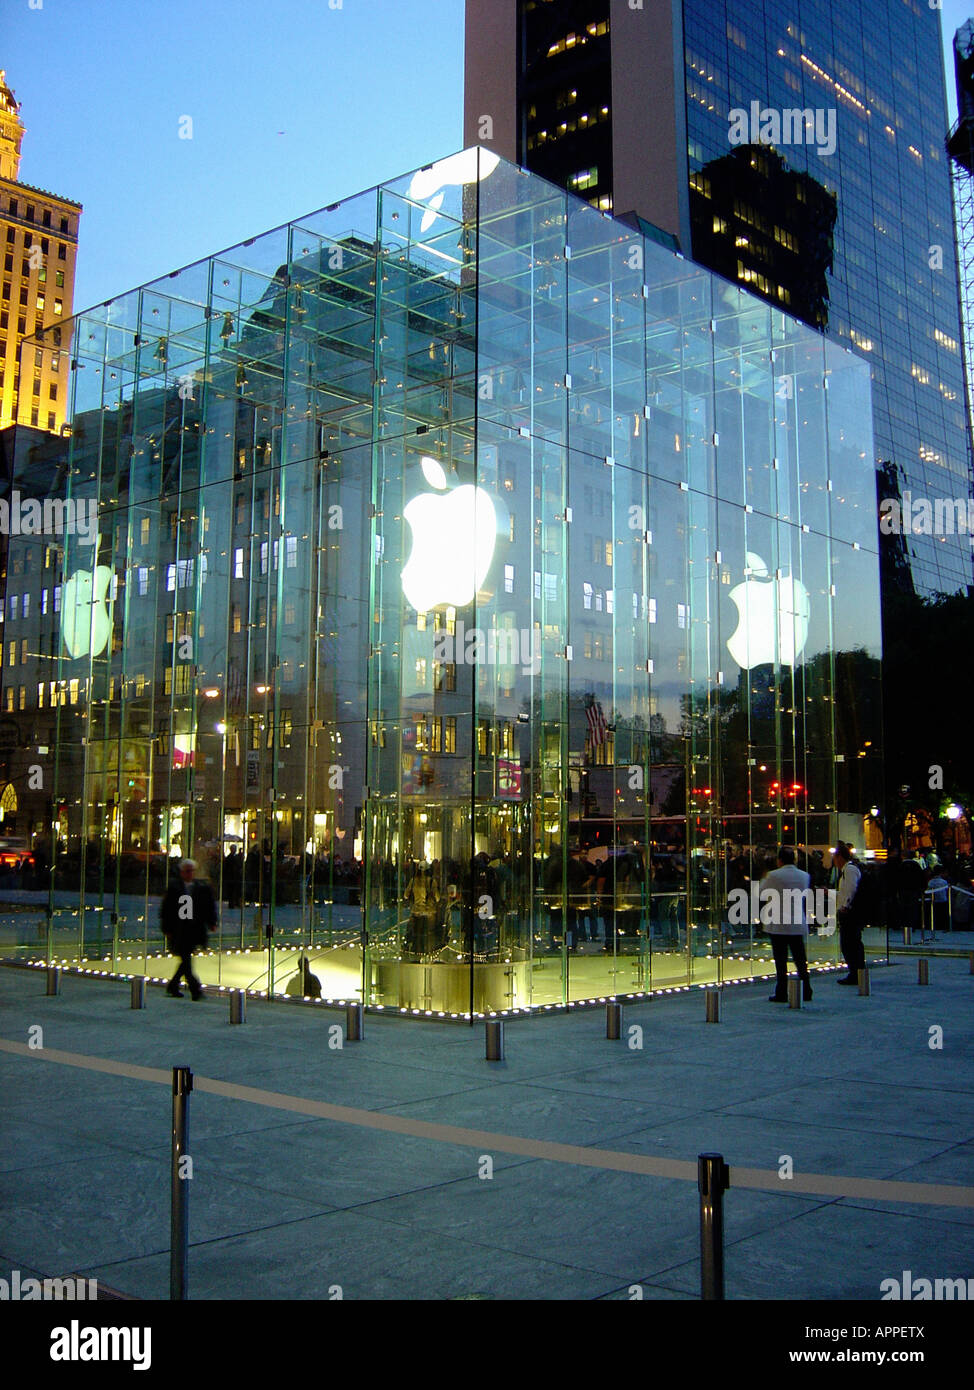 The Apple Store On Fifth Avenue And 59th Street In New York City Which Is Open 24 Hours Per Day 365 Days Year